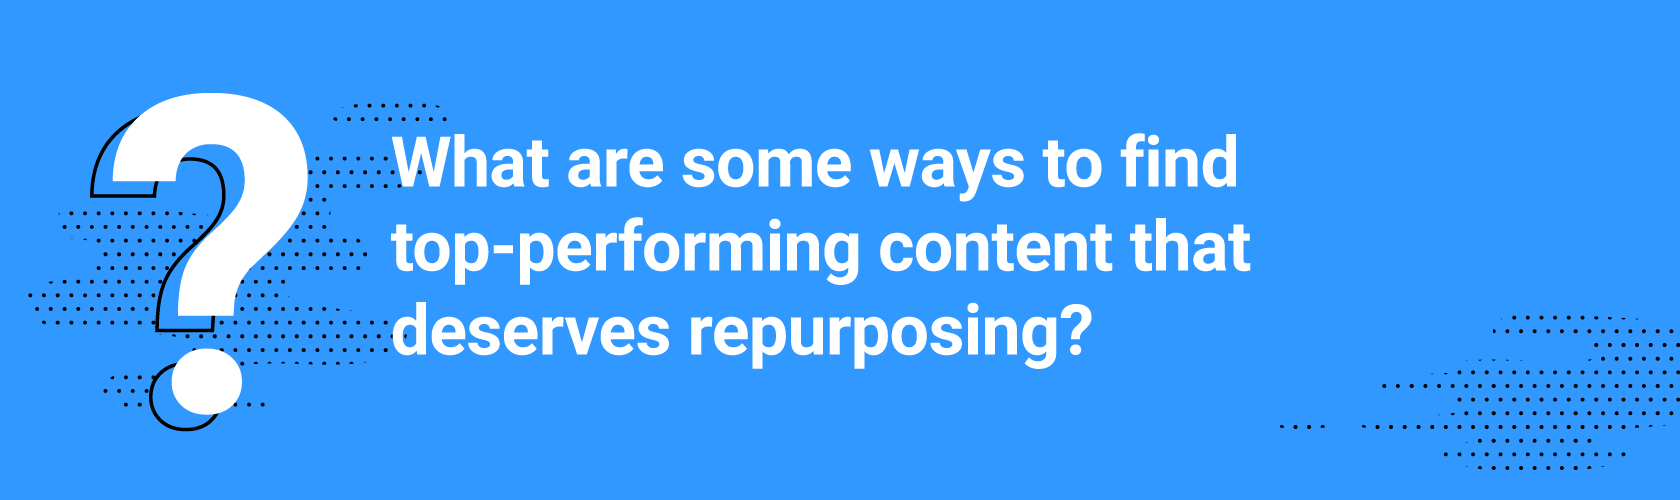 What are some ways to find top-performing content that deserves repurposing?